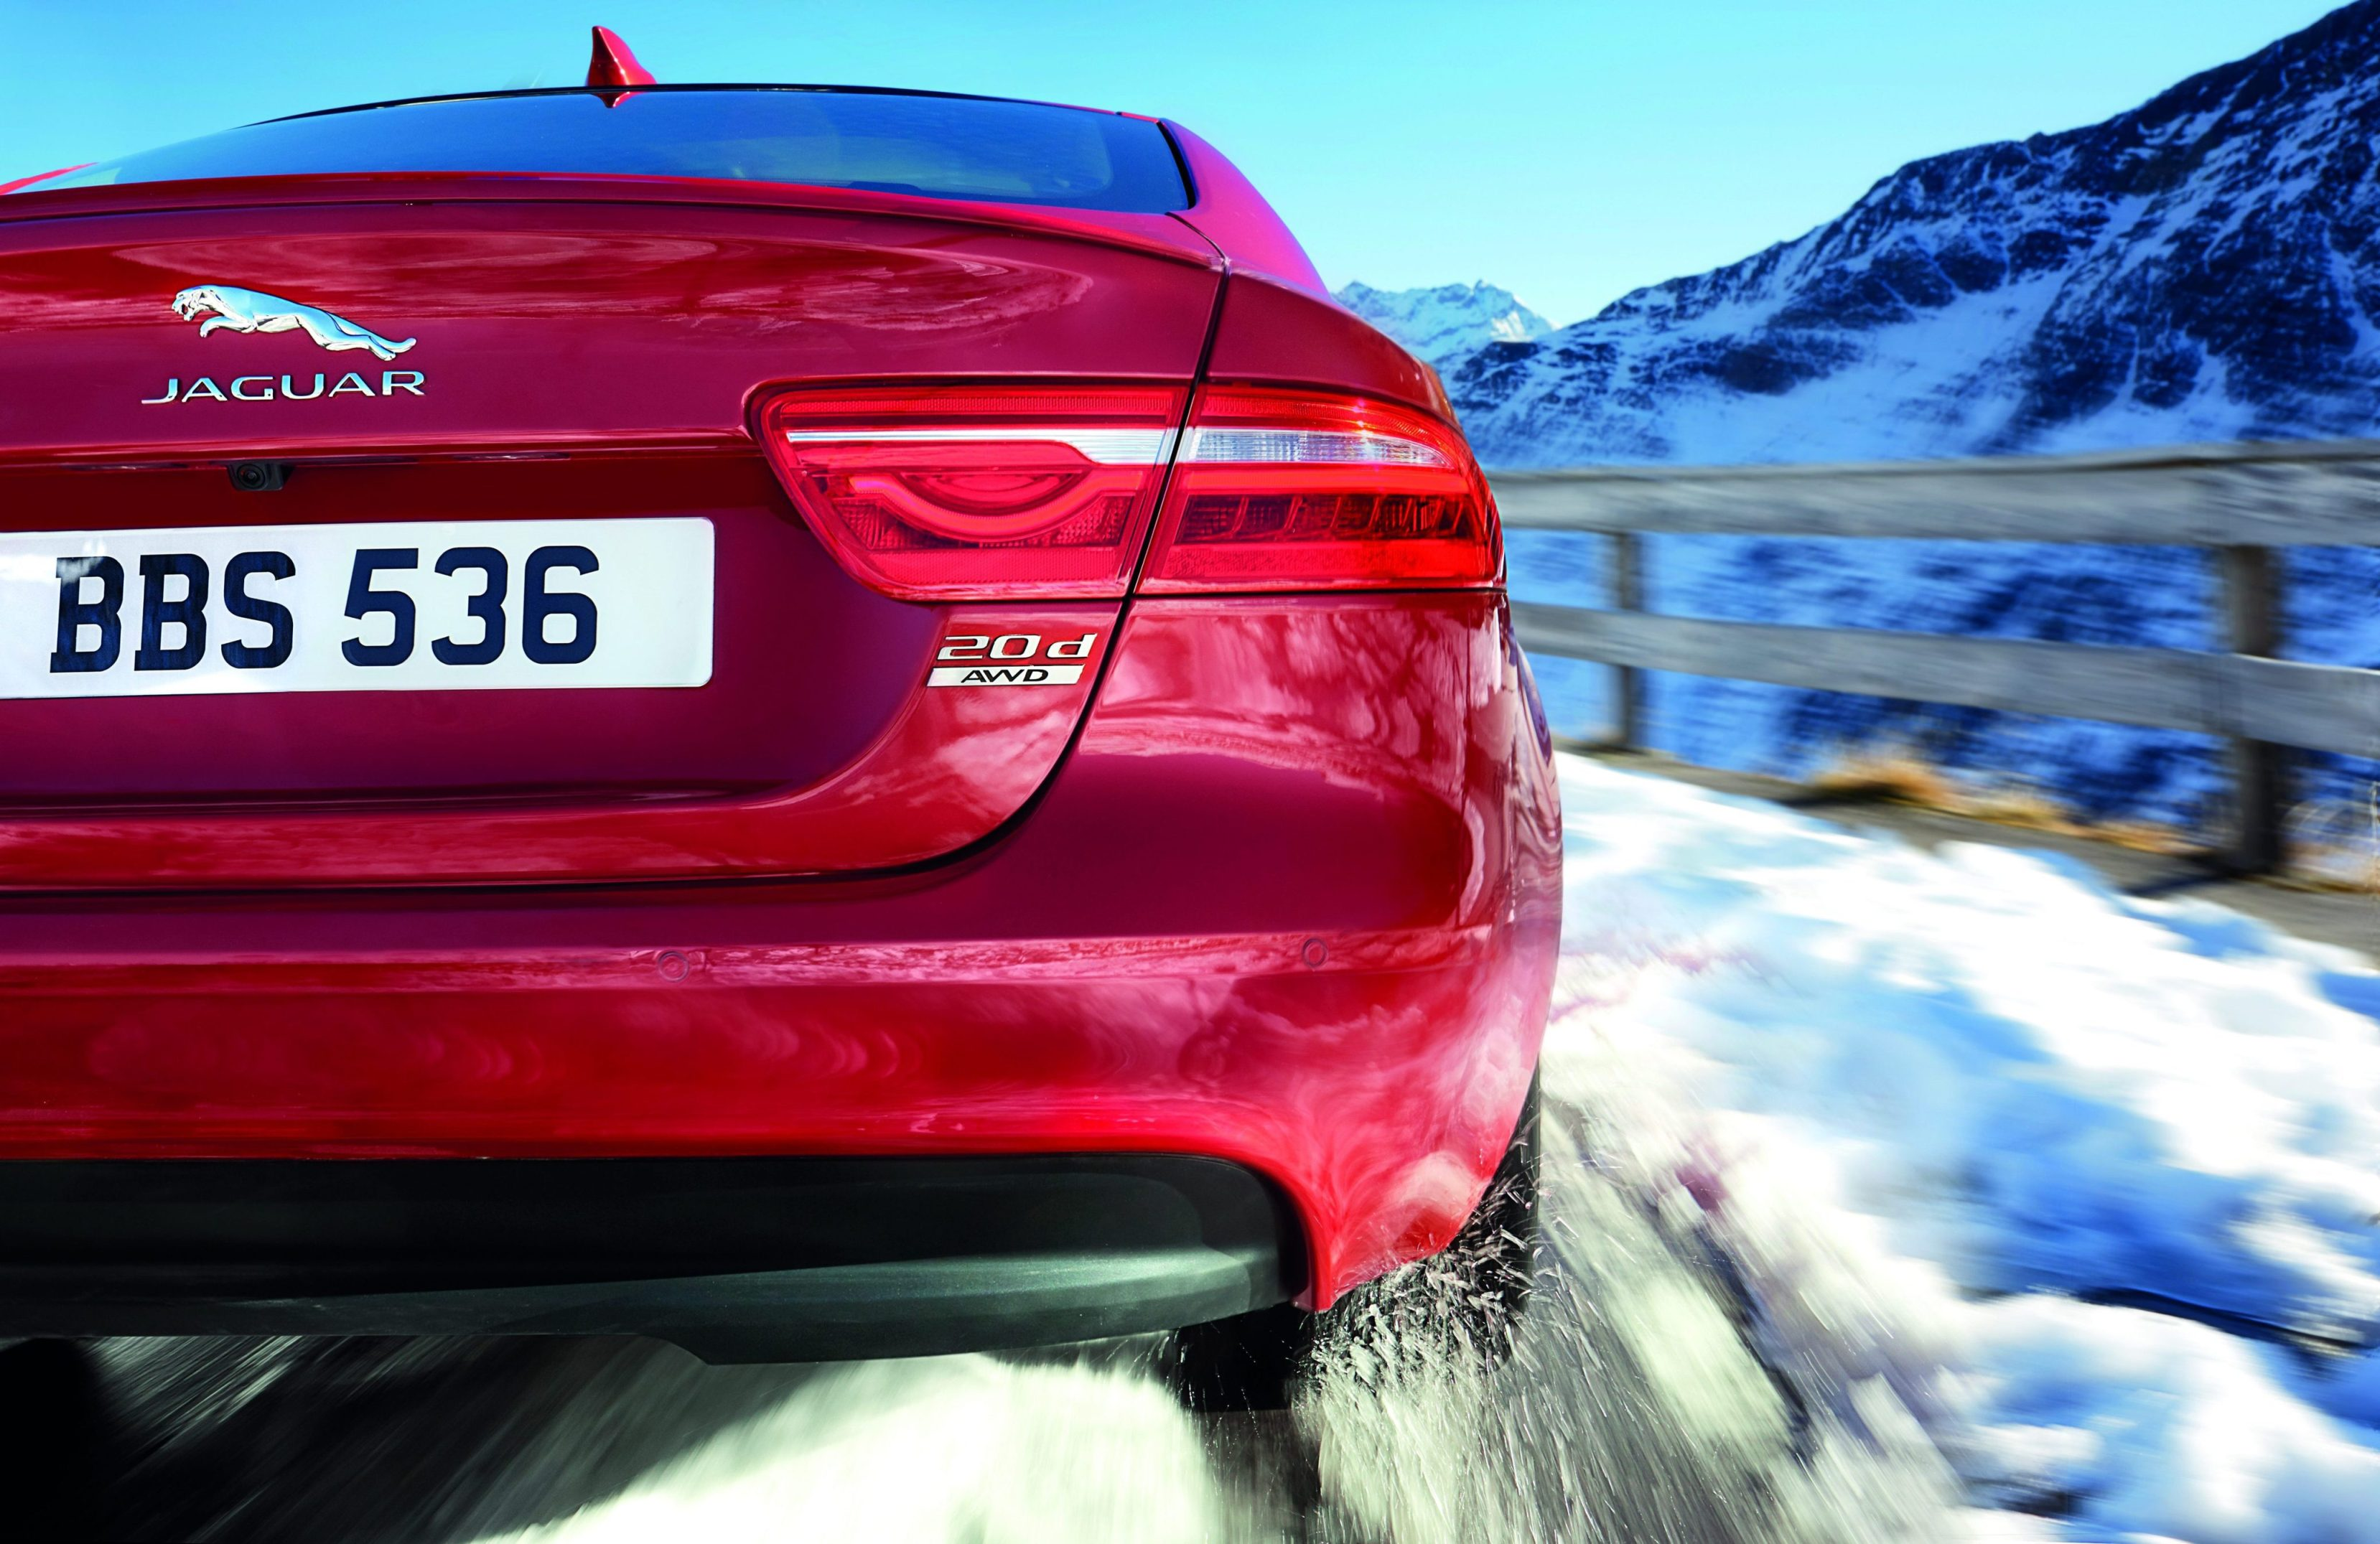 Wheels Alive All Wheel Drive Jaguar XE Road Test - All wheel drive jaguar